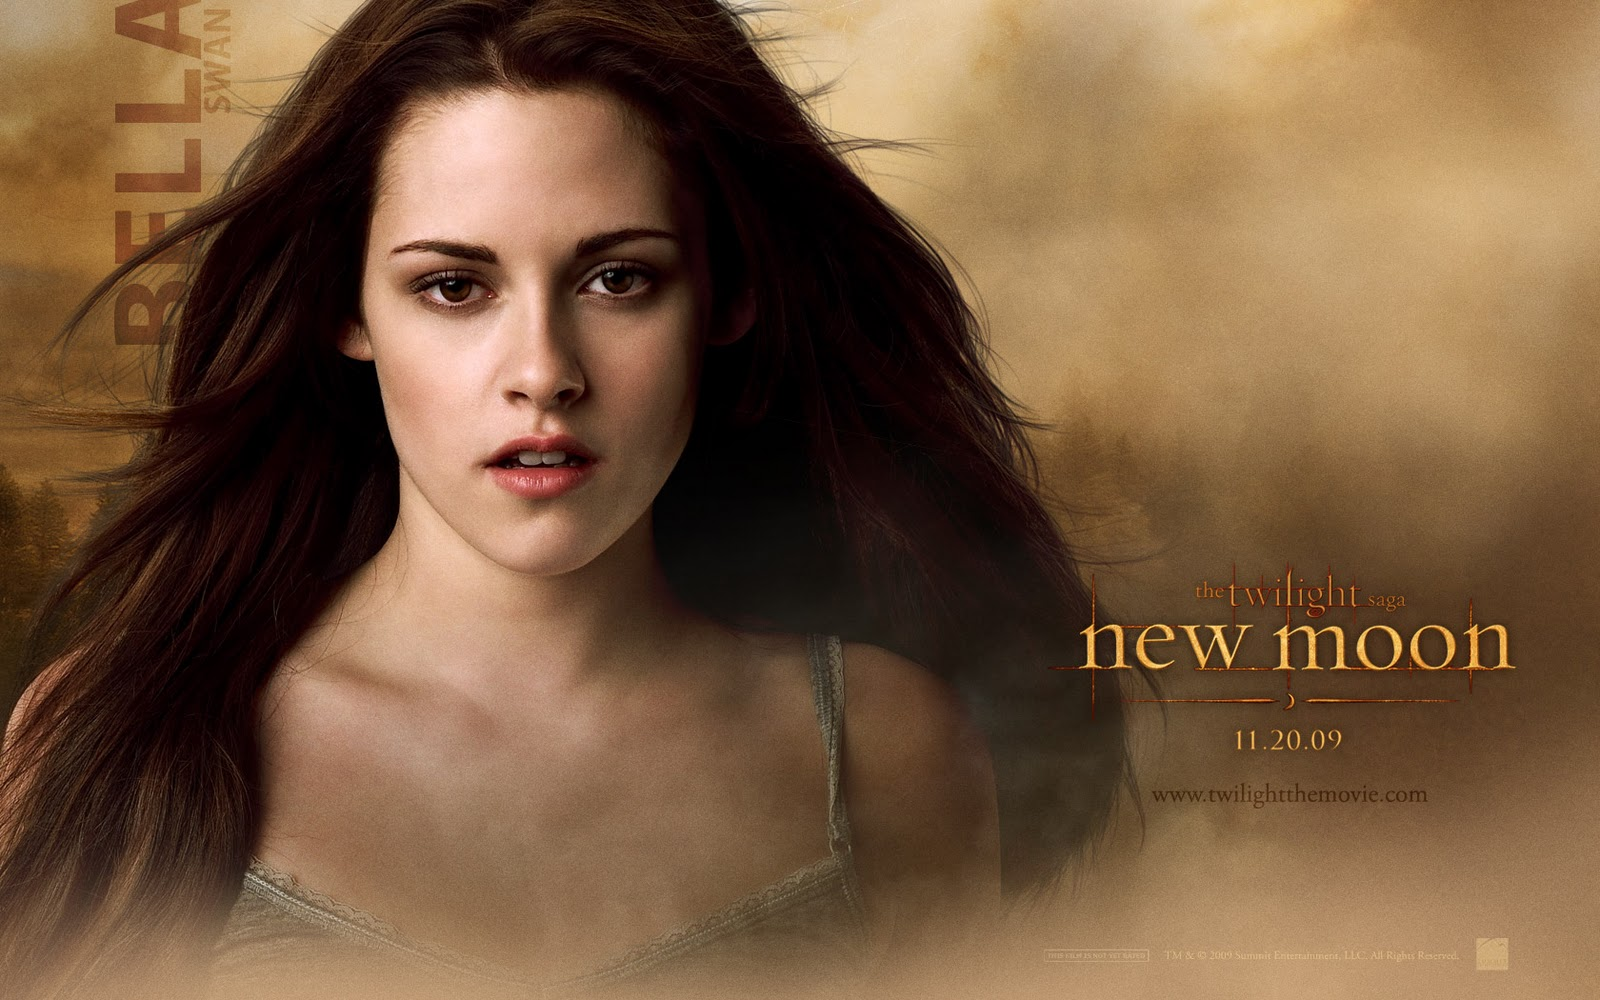 http://4.bp.blogspot.com/_vvk7ZlXr_pU/TN5x_TokM7I/AAAAAAAAAlw/Q4zDE_r8cmU/s1600/Kristen_Stewart_in_The_Twilight_Saga-_New_Moon_Wallpaper_2_1024.jpg